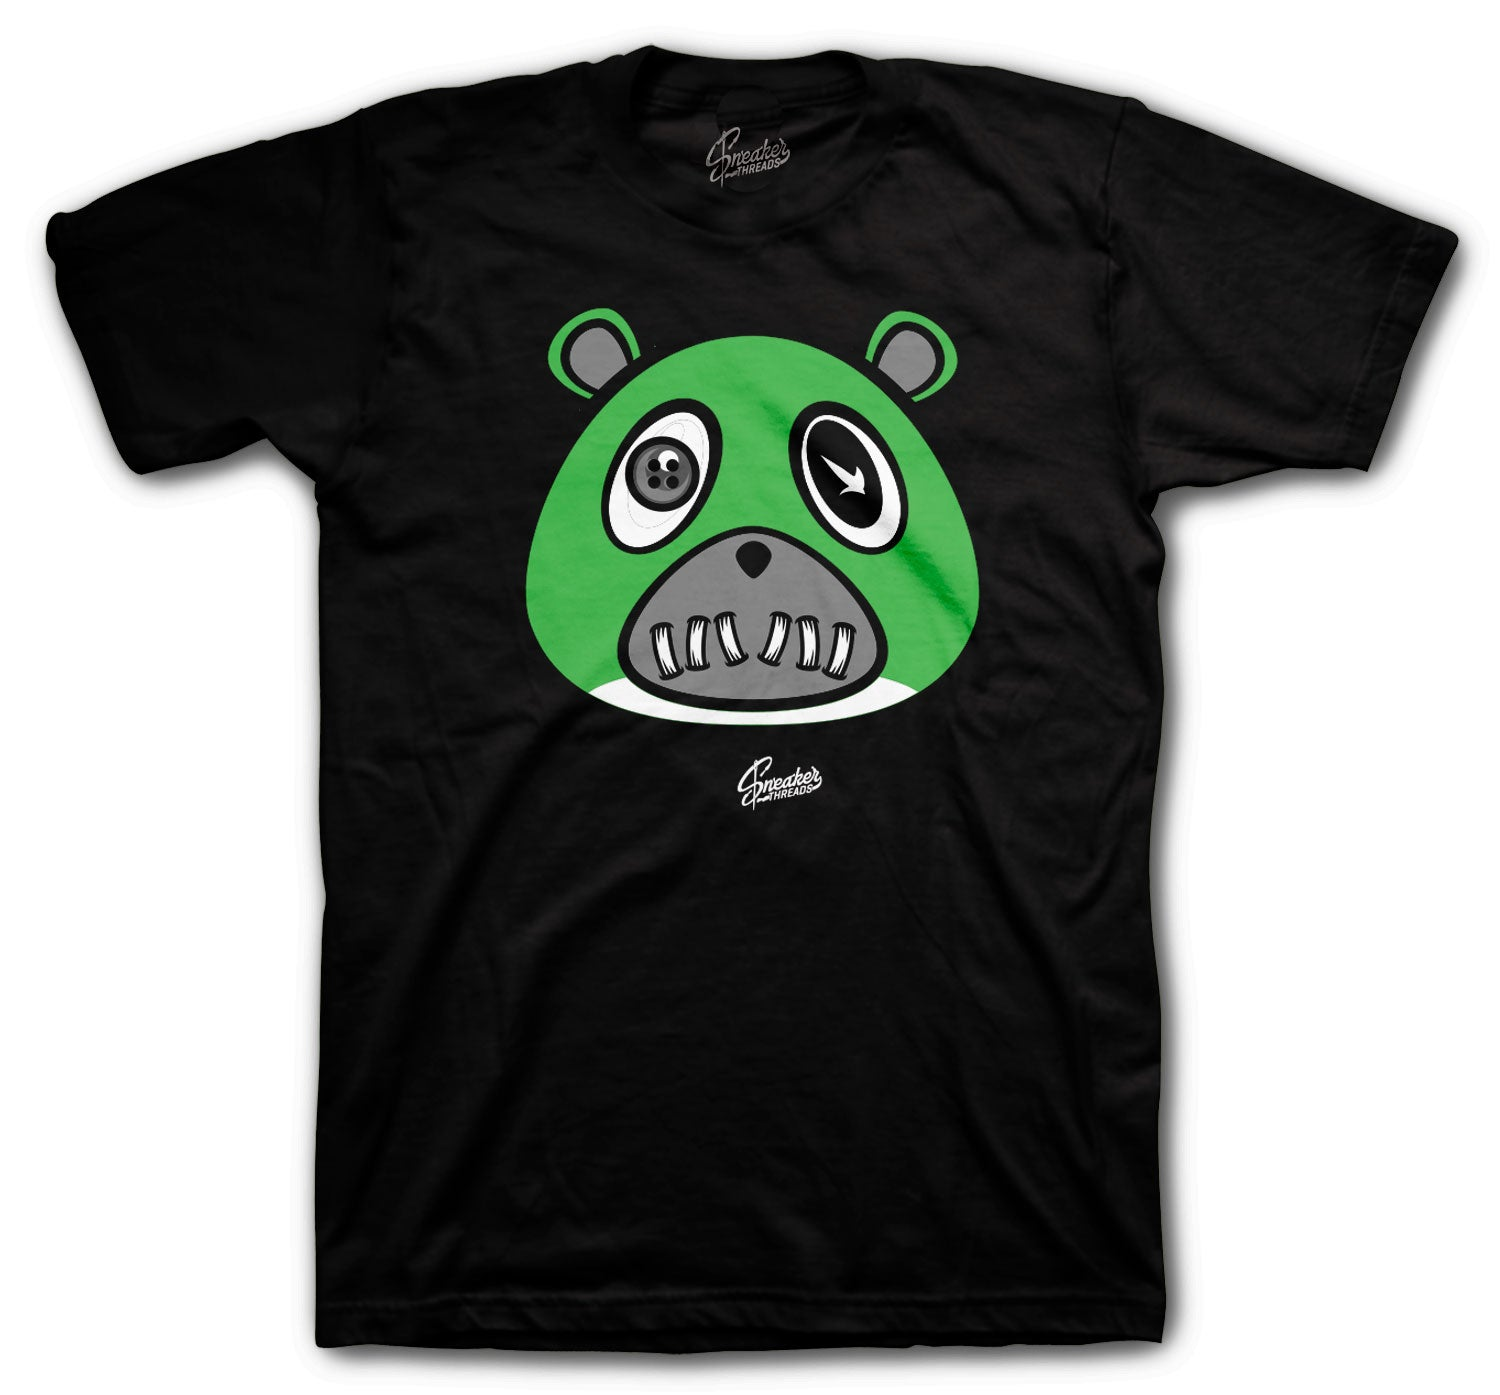 Jordan 13 Lucky Green Shirt - ST Bear - Black